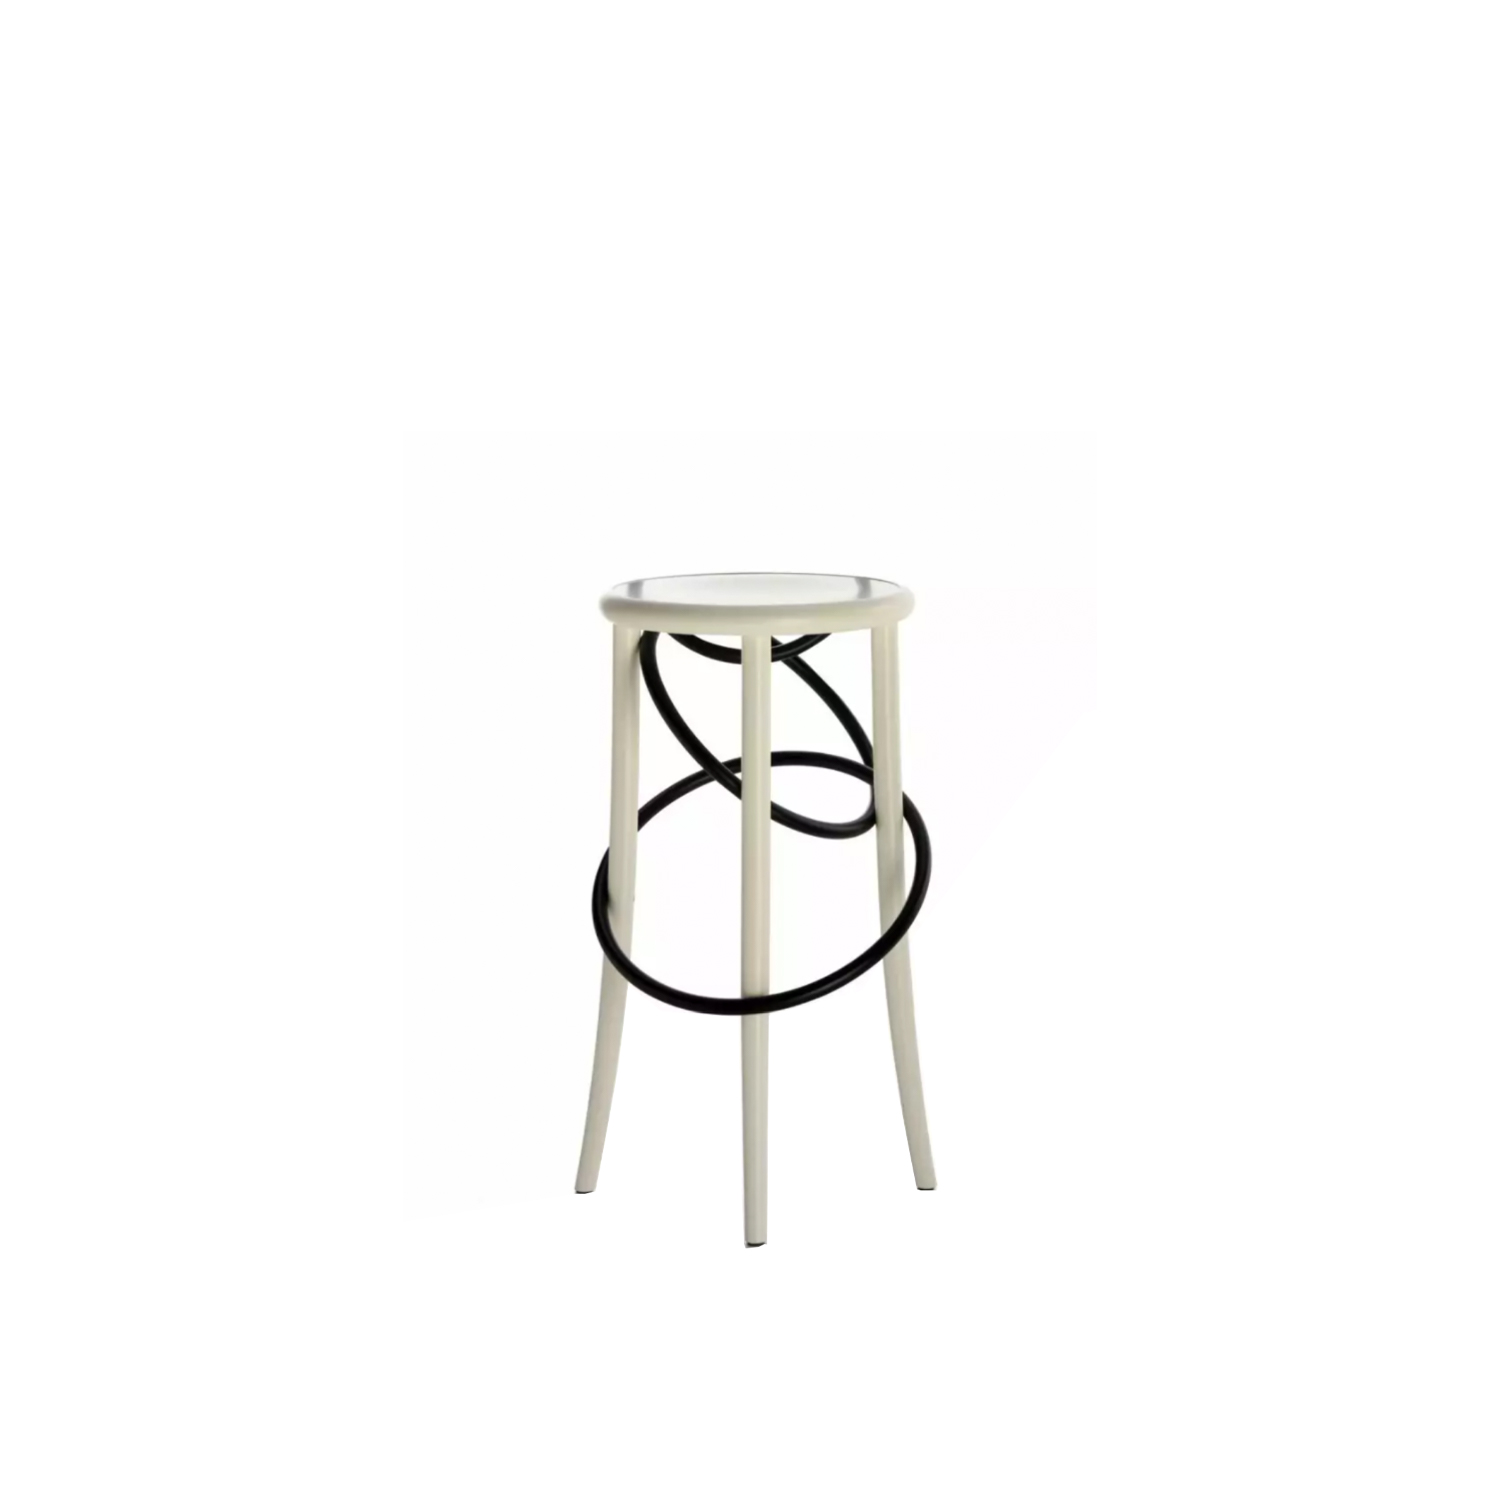 Cirque Upholstered One Tone Stool - The light and playful circus theme is at the core of the Cirque family of stools designed by Martino Gamper for Wiener GTV Design. The bent element, which is the brand's signature trait, is surprisingly and unexpectedly inserted in the base of the stool, forming the outline of the seat in the form of a chain comprising two or three wooden rings that loop around the full length of the stool legs. This striking styling effect blends in seamlessly with the functionality of the seat, which is available in two heights: a tall, sleek stool with or without backrest, Cirque L and Cirque M, and the stable and well-proportioned low stool, Cirque S.